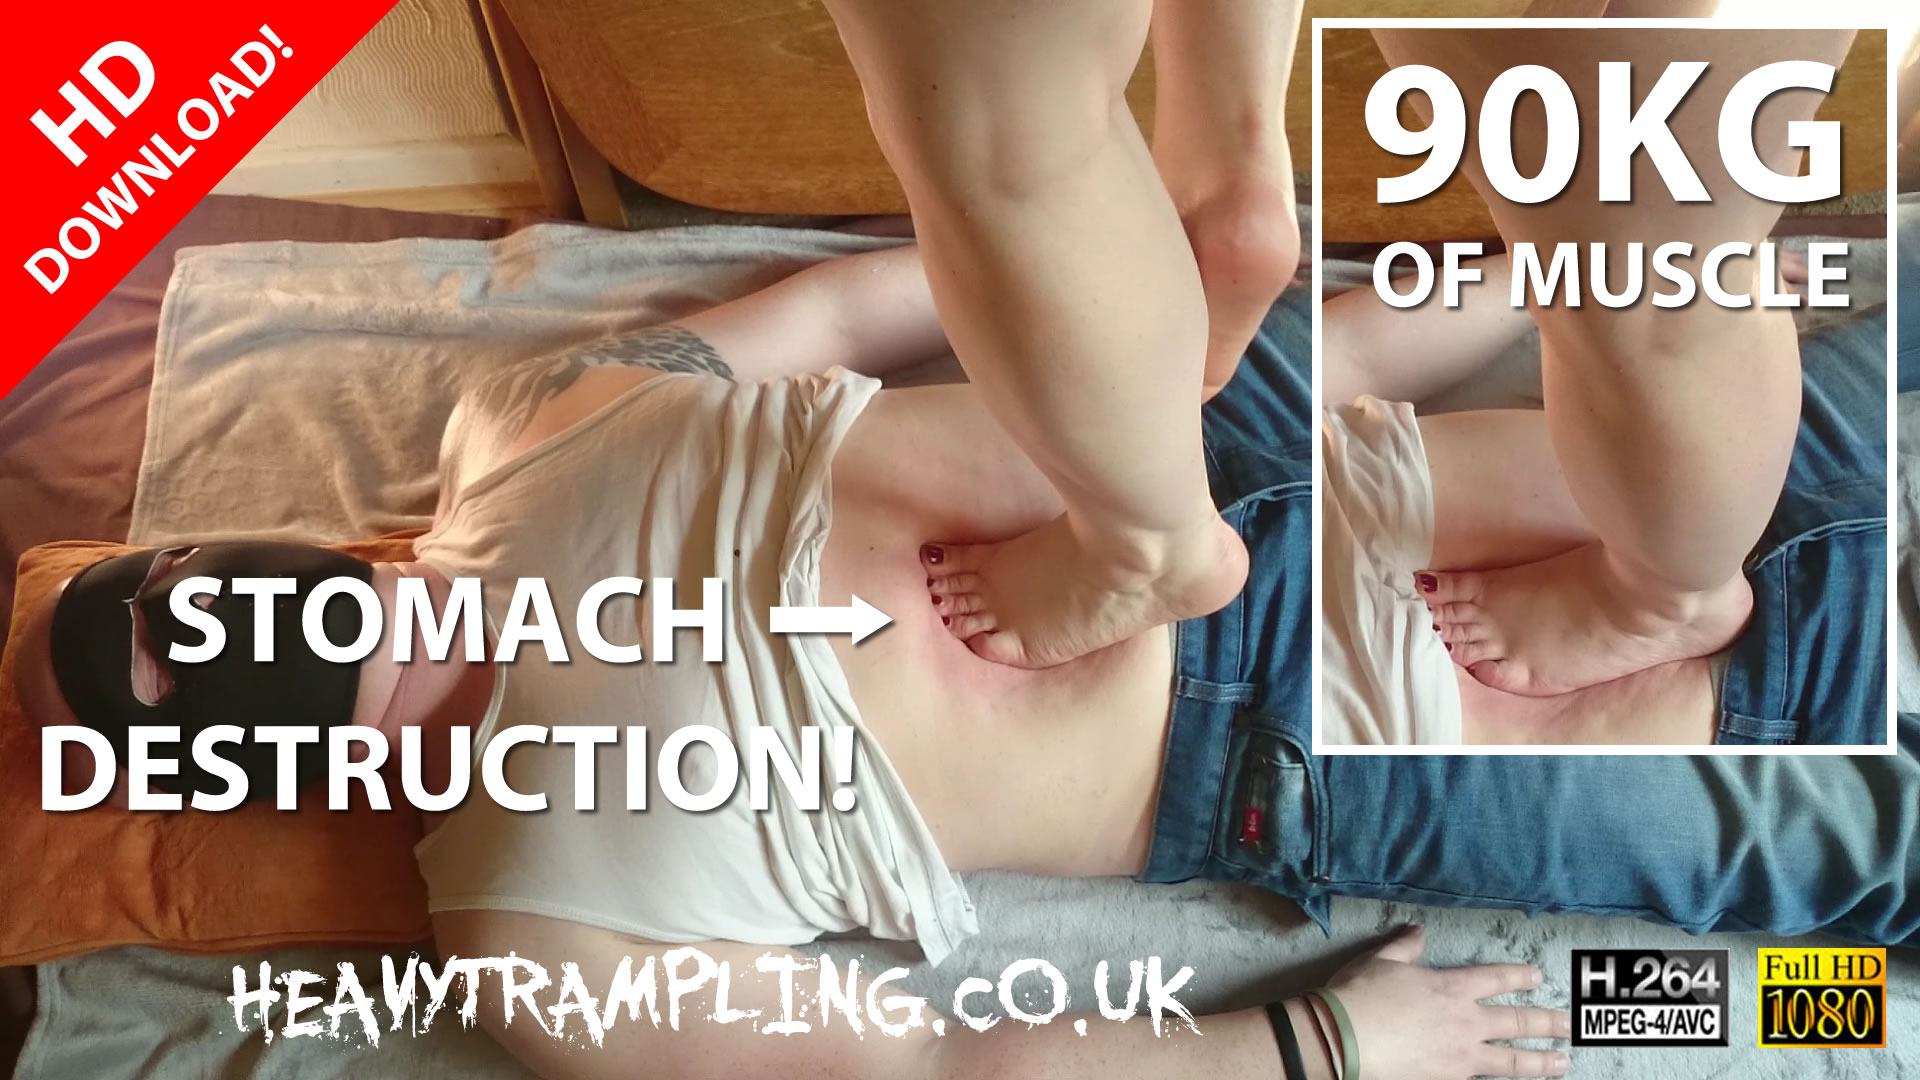 Trampling: 6 Min 90kg Barefoot Bodybuilder Stomach Trample